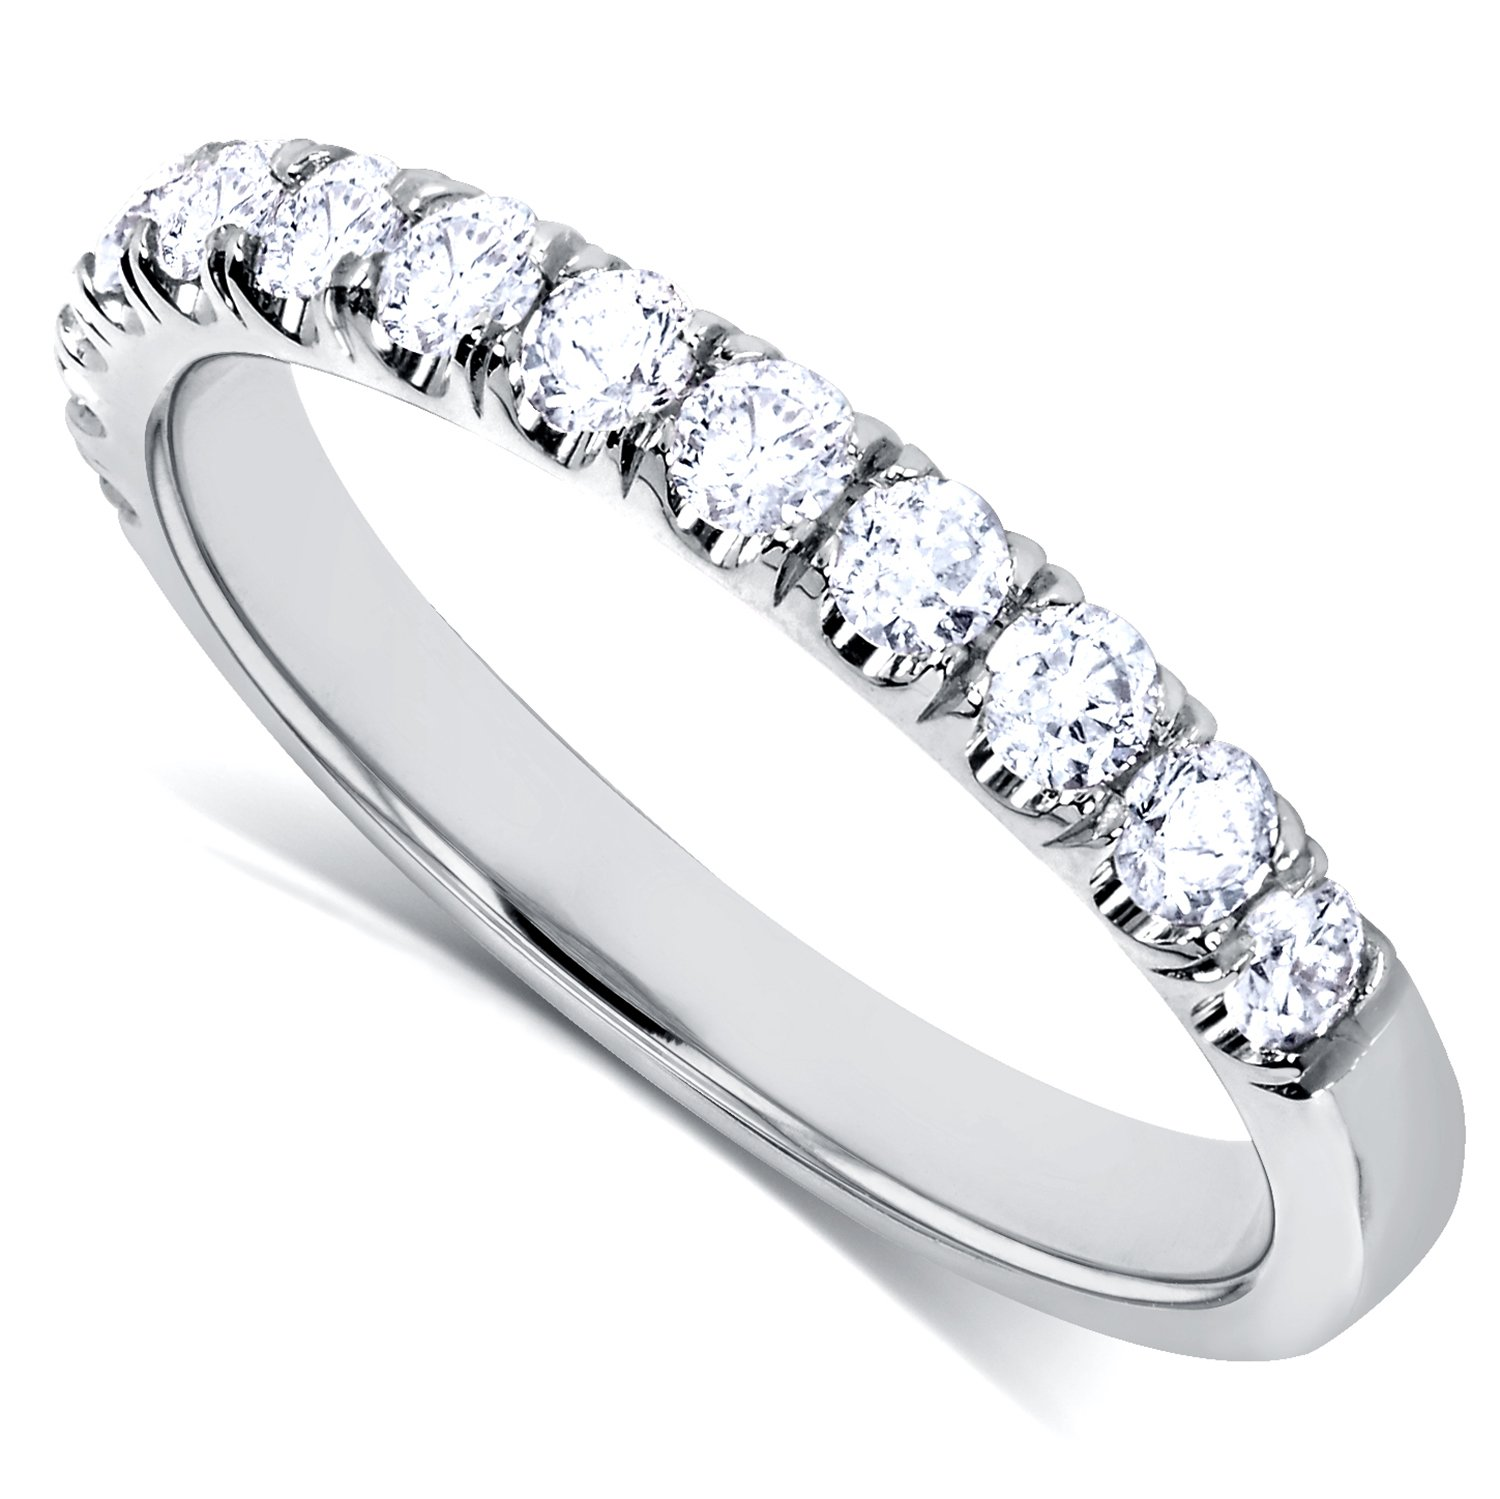 Diamond Comfort Fit Flame French Pave Band 1/2 carat (ctw) in 14K White Gold by Kobelli (Image #2)